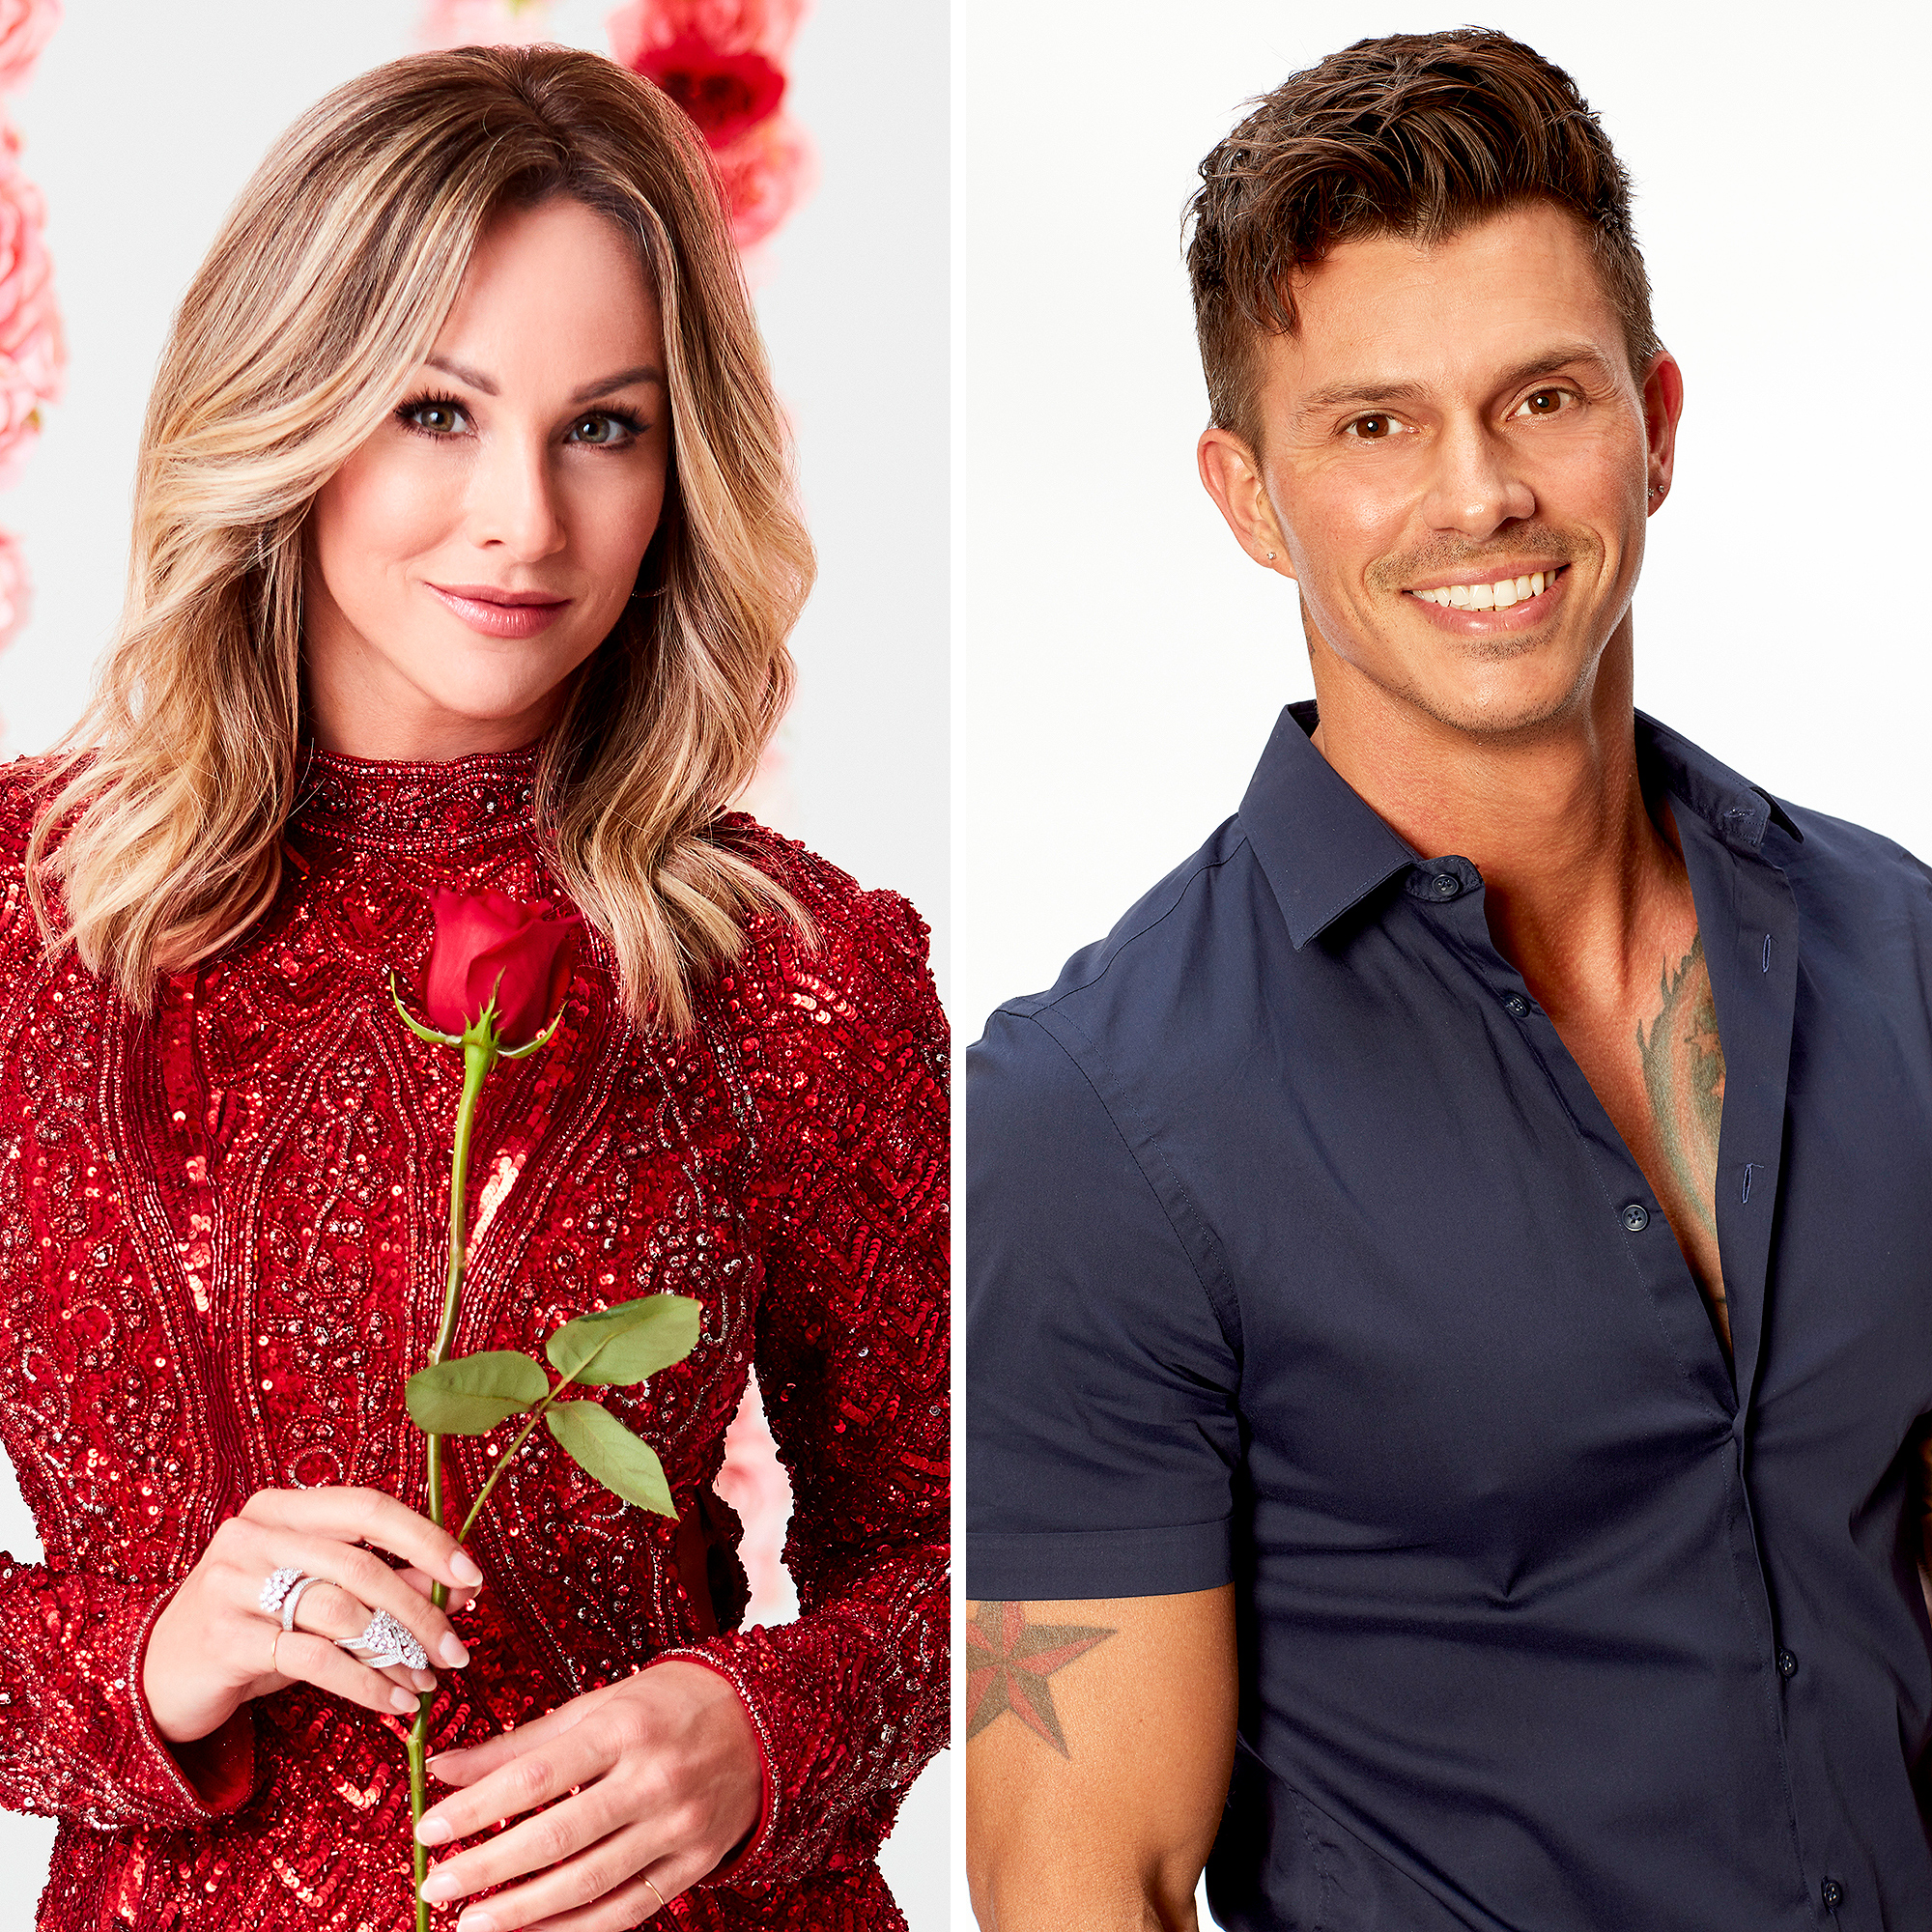 Clare Crawley's 'Bachelorette' Contestant Kenny Braasch: 5 Things to Know